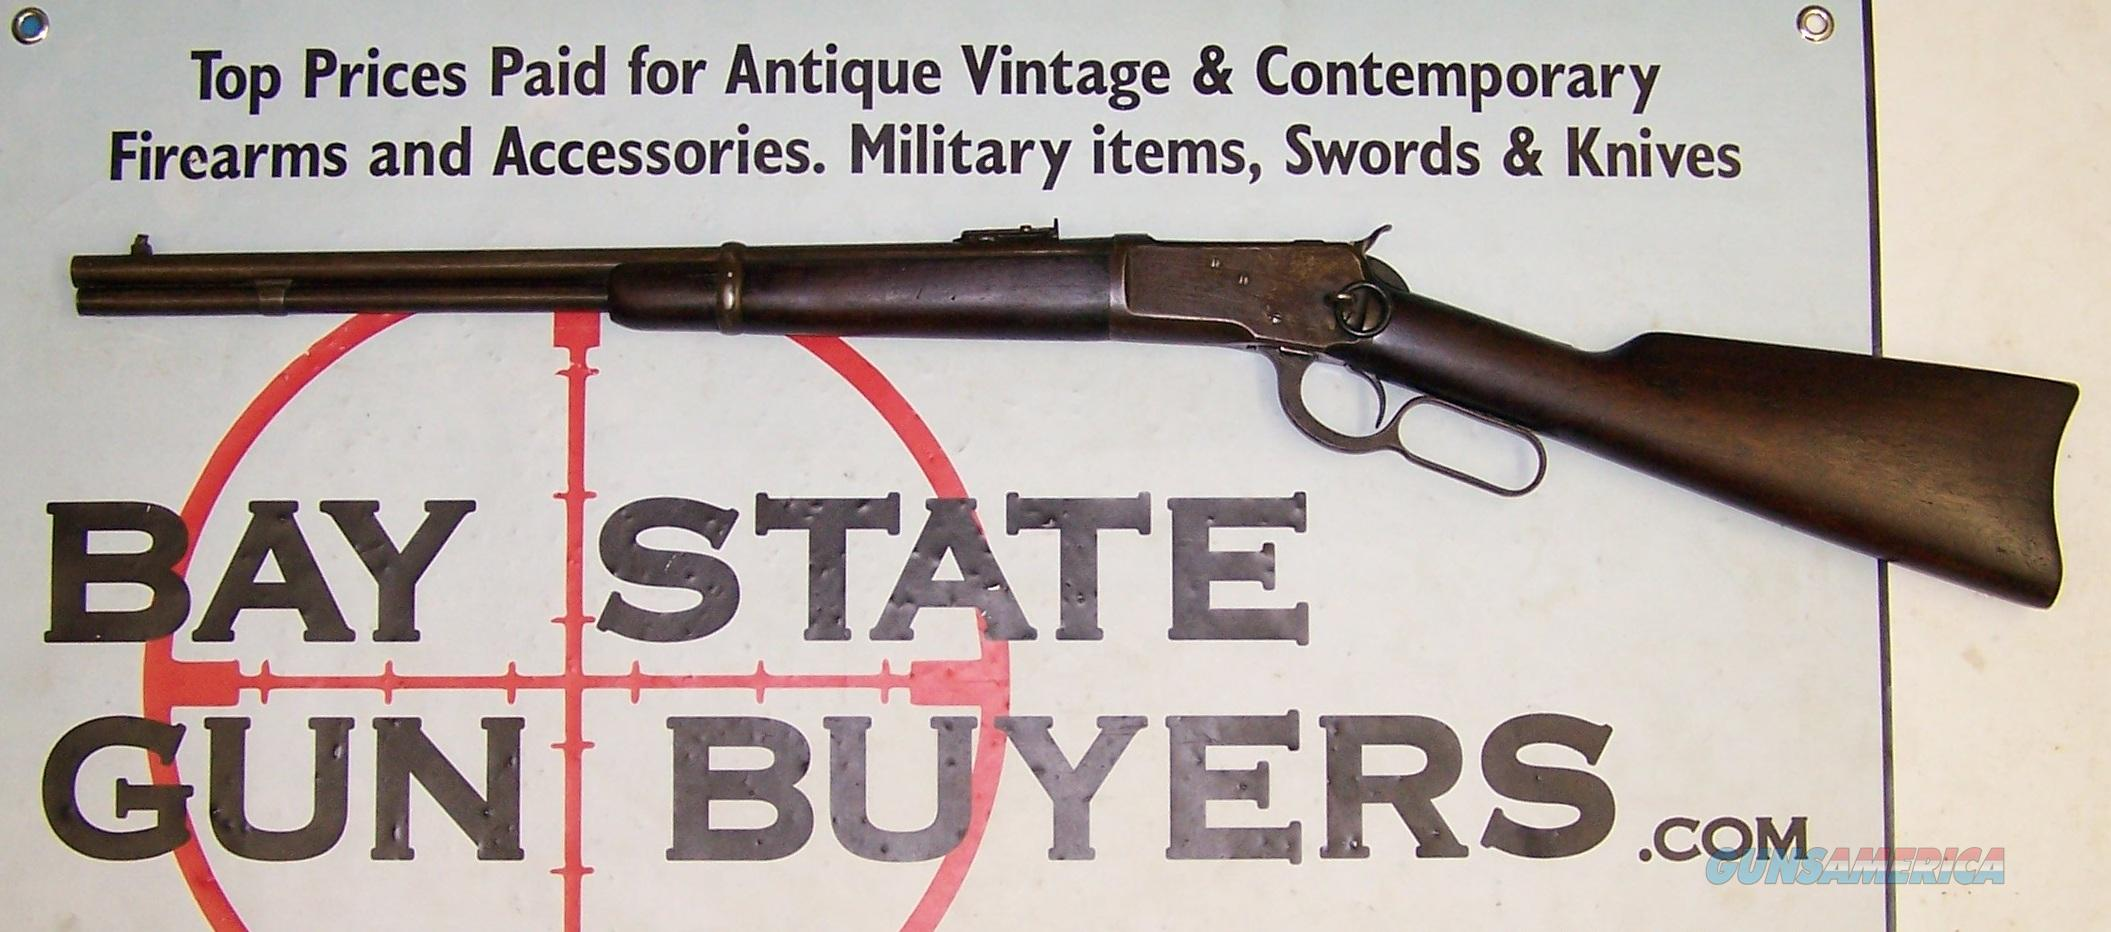 Winchester Model 1892 lever action rifle 25-20 (1922 Manufacture Date) Saddle Ring Carbine  Guns > Rifles > Winchester Rifles - Modern Lever > Other Lever > Pre-64